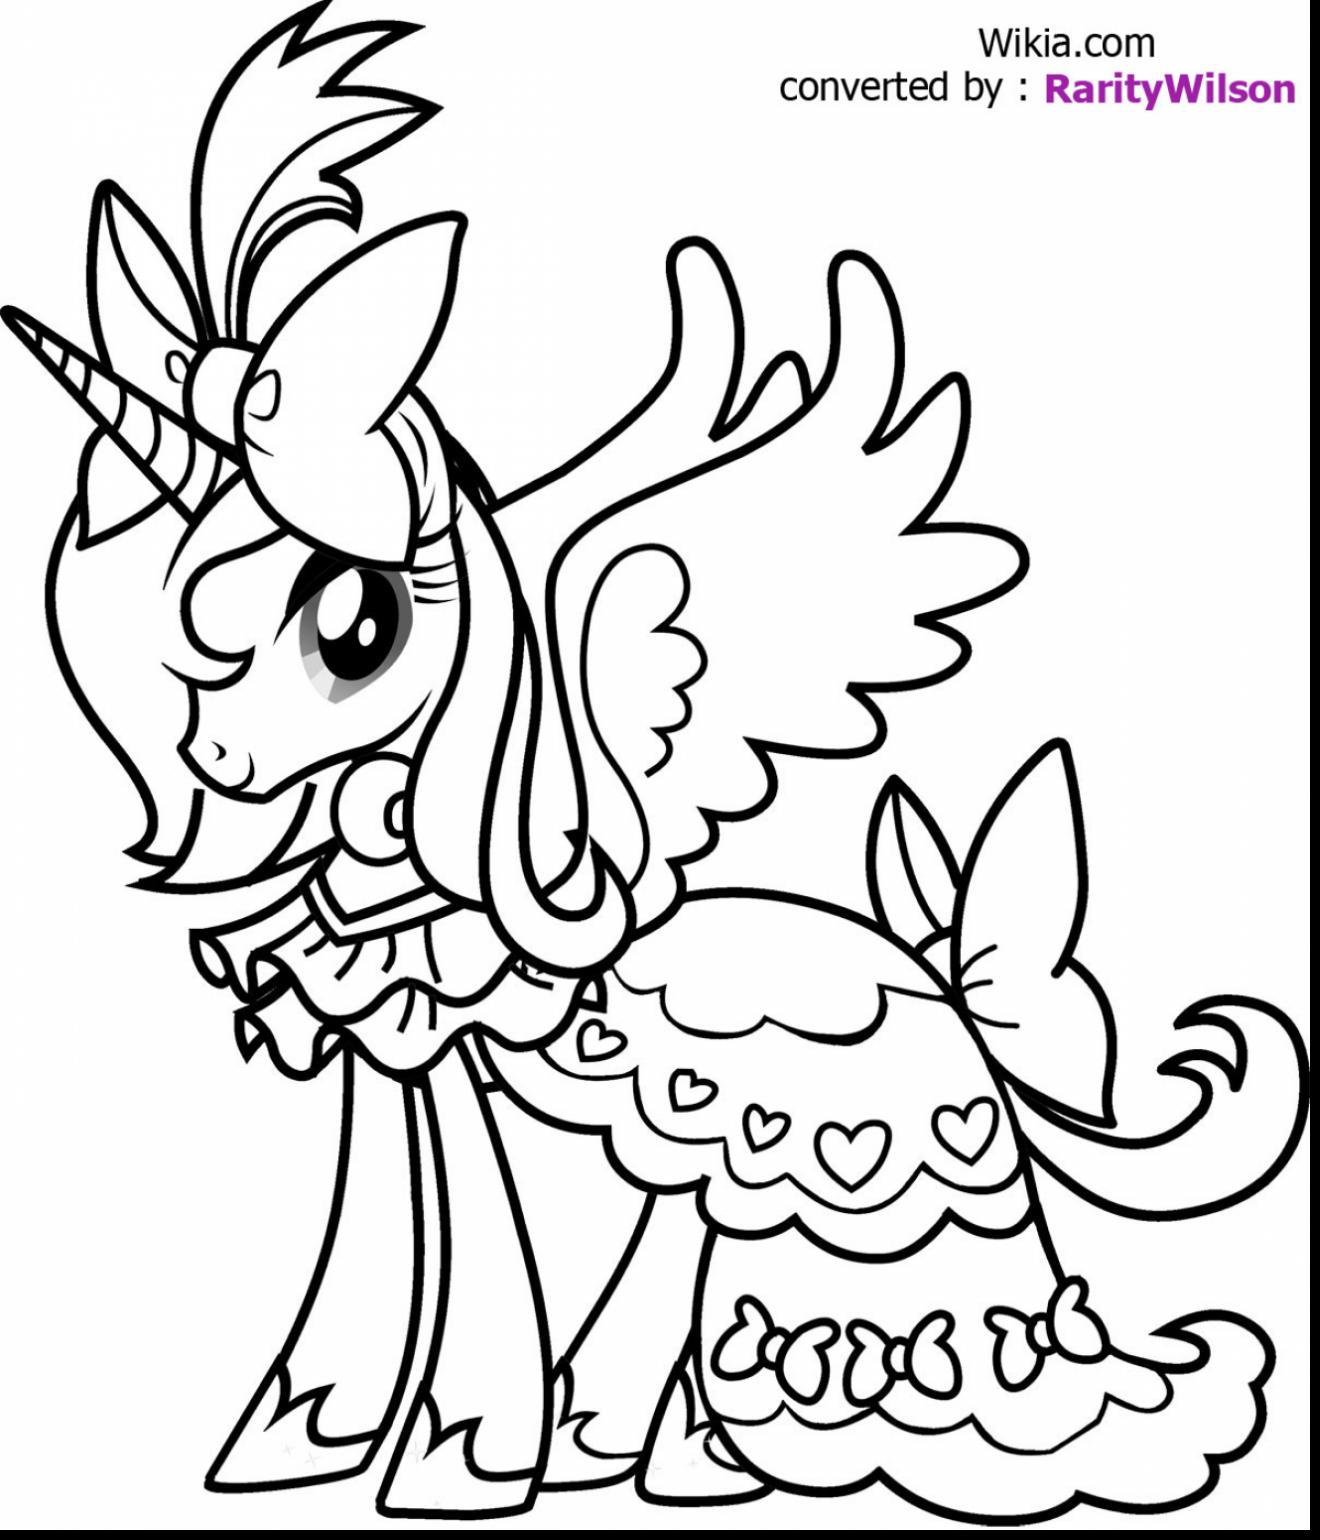 Little Pony Coloring Pages | Free download best Little Pony Coloring ...